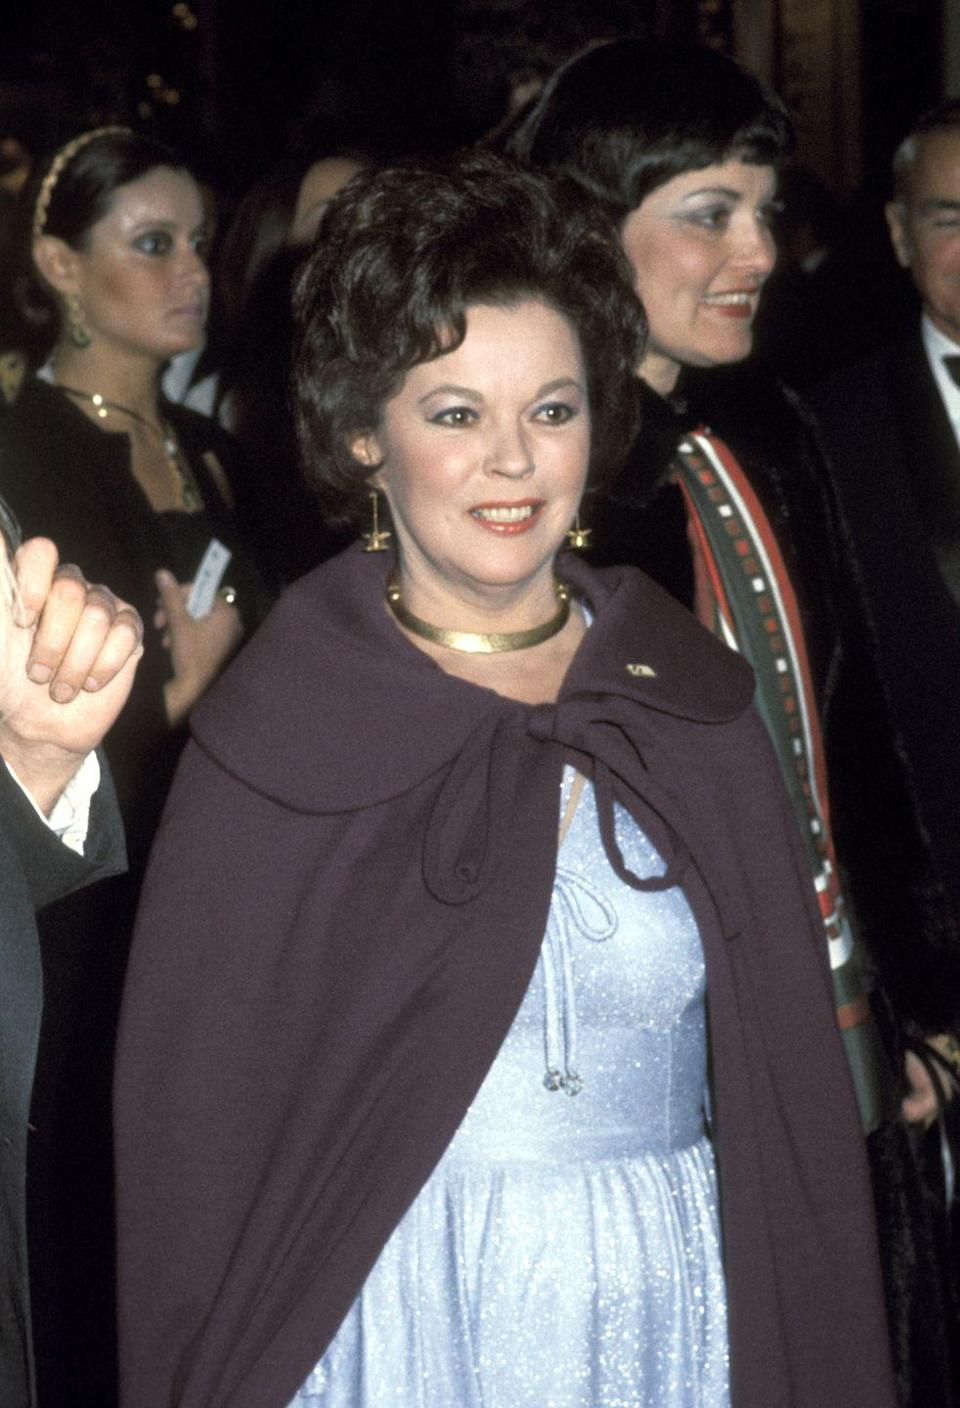 <p>In 1974, Shirley was named the first female Chief of Protocol and was in charge of the inauguration of President Jimmy Carter. Here, she's seen arriving at the Inaugural Ball. </p>